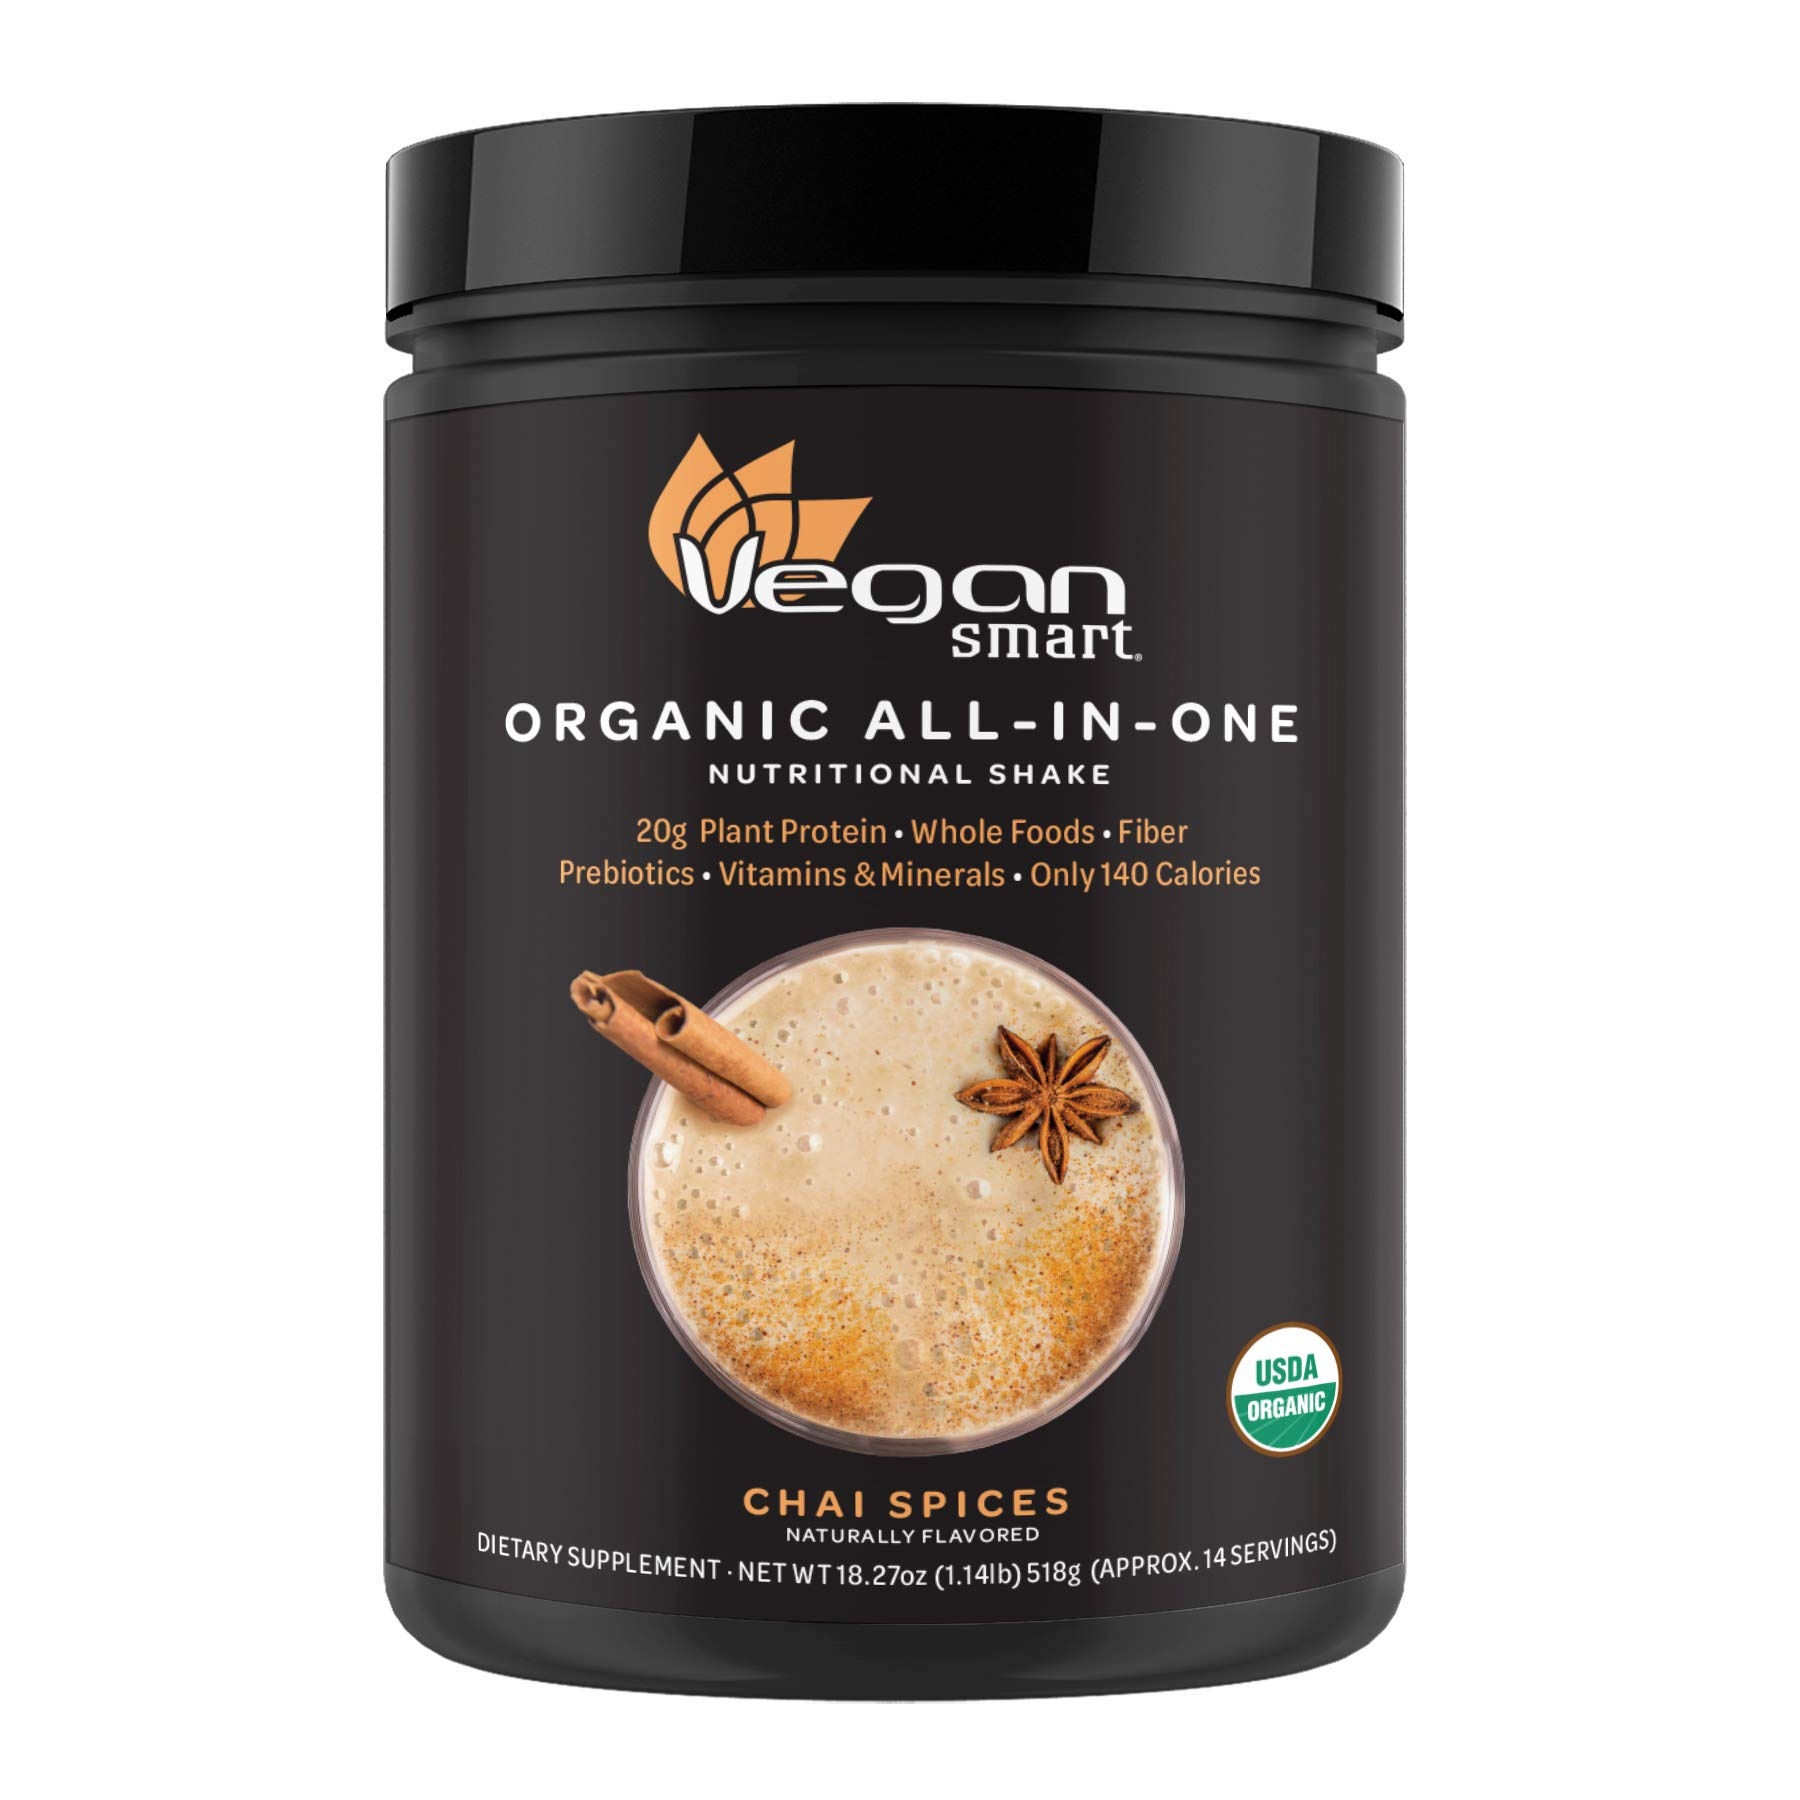 Vegansmart Plant Based Organic Protein Powder by Naturade, All-in-One Nutritional Shake - Chai Spices (14 Servings)